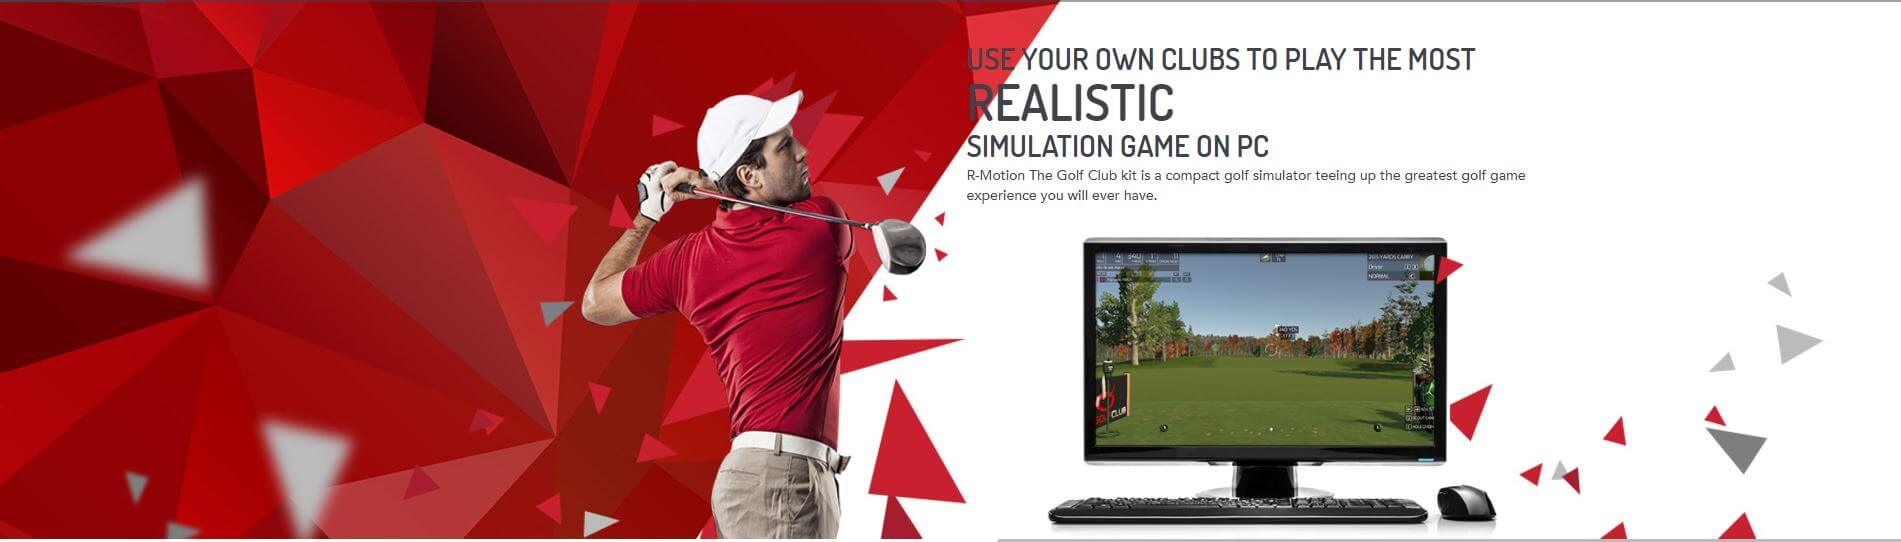 R-MOTION Golf Simulator Club Kit